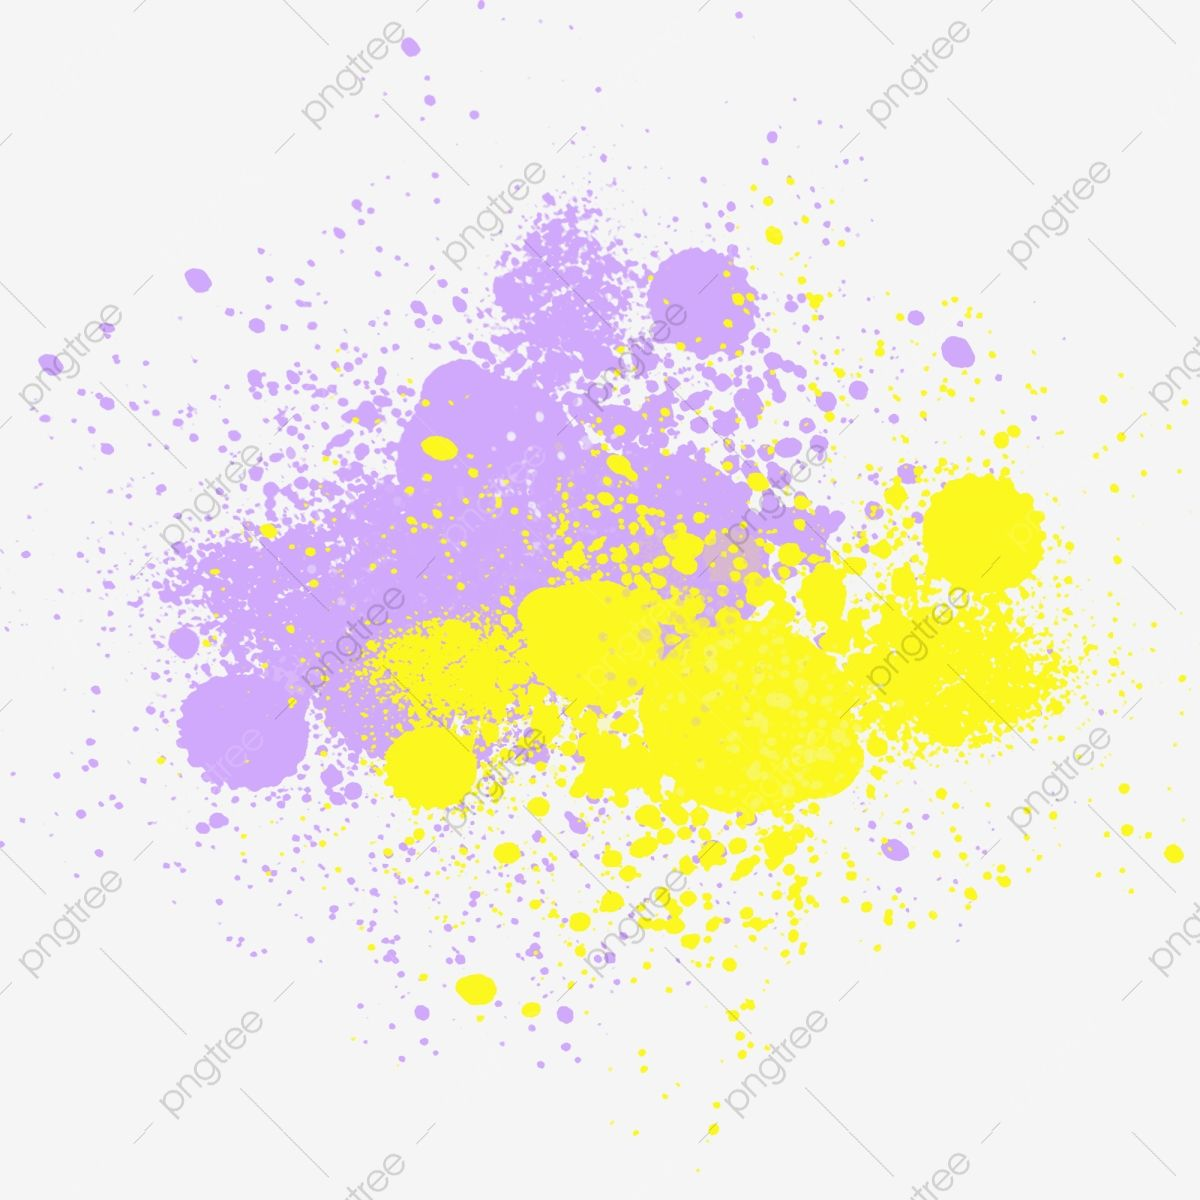 Yellow And Purple Complementary Color Irregular Paint Splashing Yellow Purple Complementary Colors Png Transparent Clipart Image And Psd File For Free Downlo Complementary Colors Paint Splash Watercolor Background